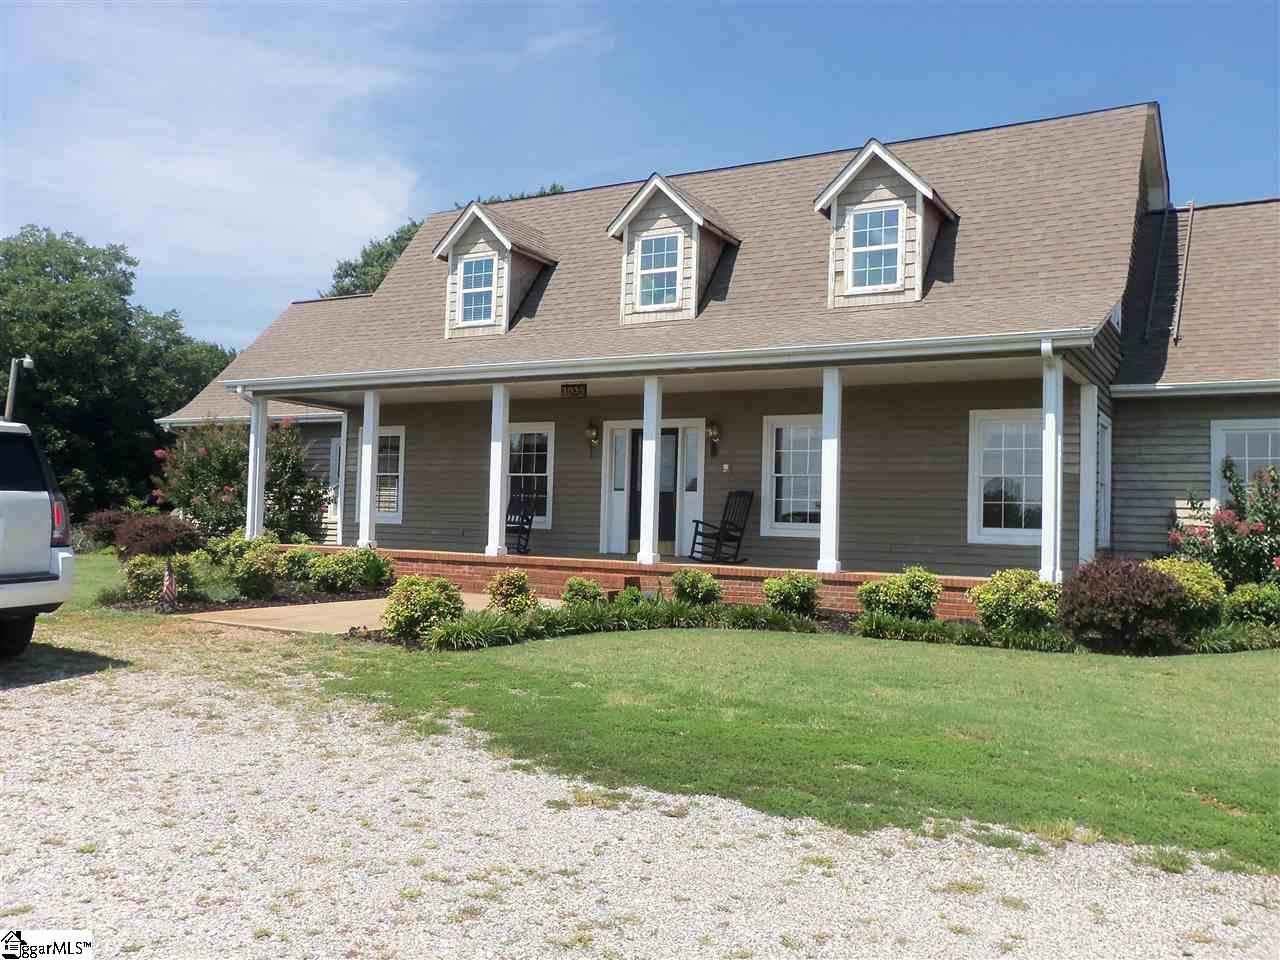 3035 E Gap Creek, Greer, SC 29651